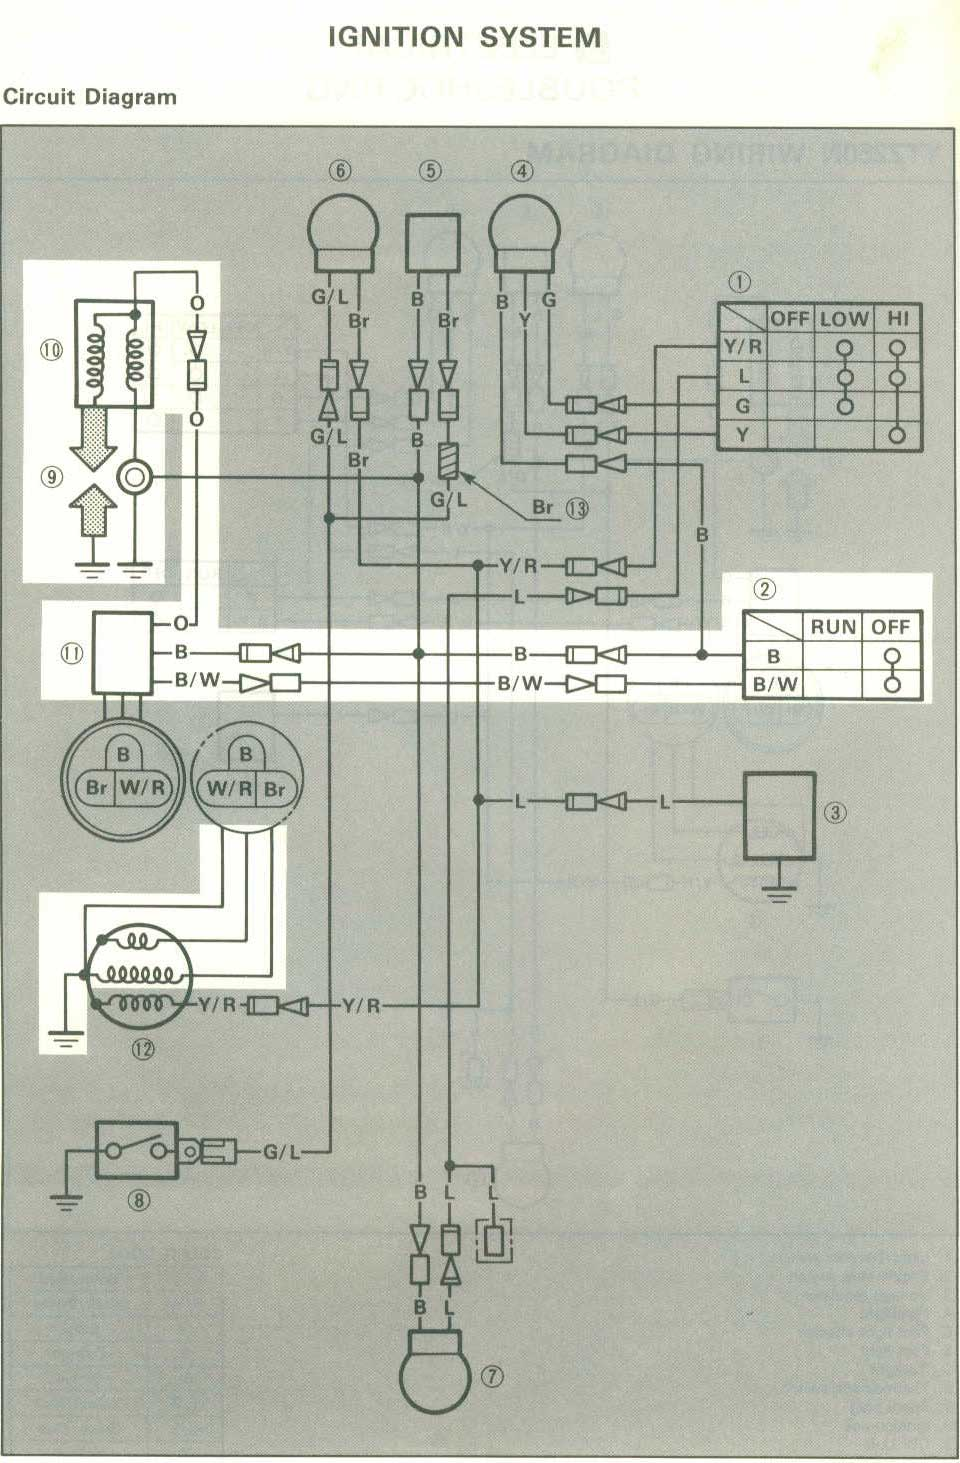 3 wheeler world tech help yamaha wiring diagrams rh 3wheelerworld com Yamaha F150 Outboard Wiring Diagram Yamaha Marine Outboard Wiring Diagram